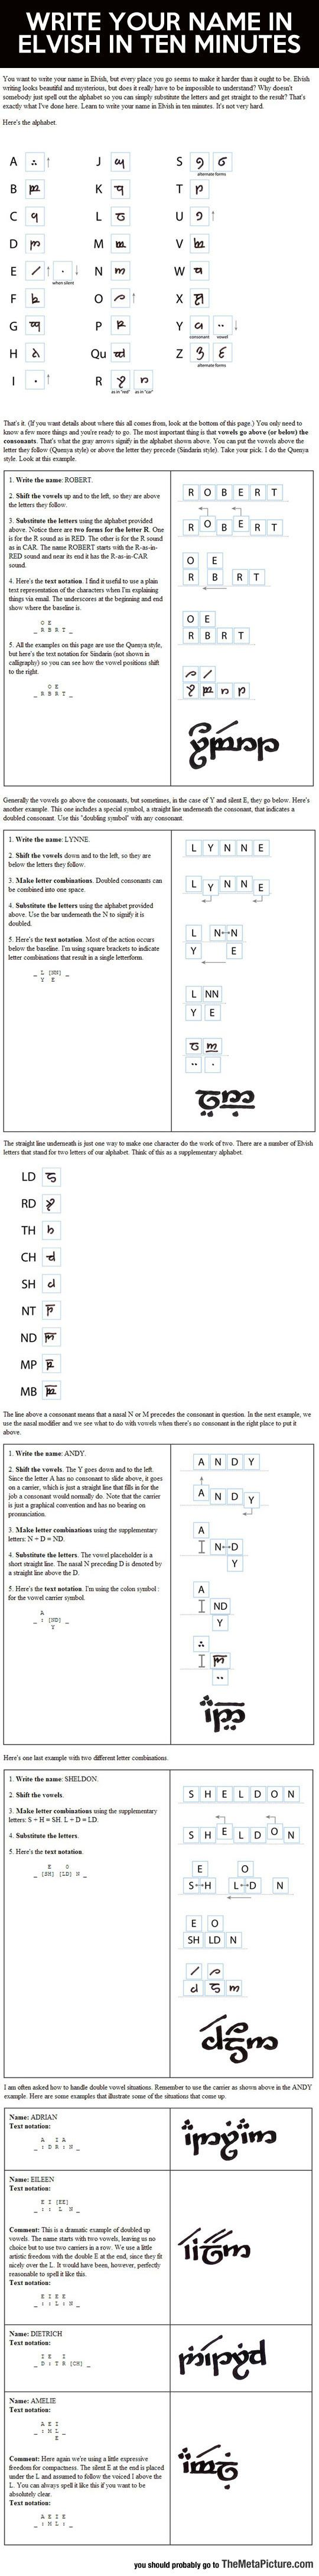 How To Write Your Name In Elvish In 10 Minutes